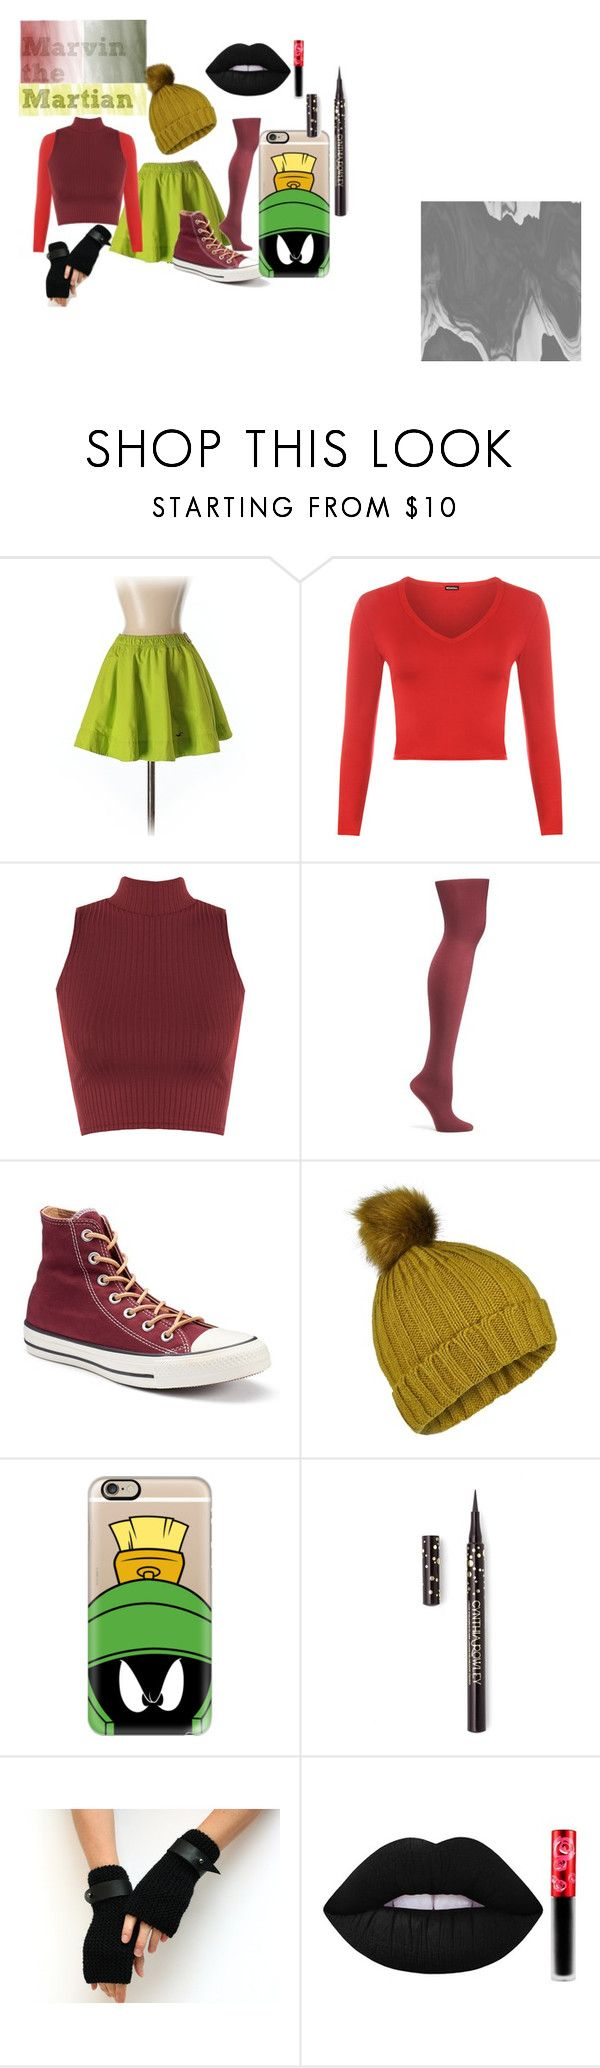 """Marvin the Martian"" by jmclarty on Polyvore featuring Hollister Co., WearAll, Old Navy, Converse, Miss Selfridge, Casetify, Cynthia Rowley, Lime Crime and looneytunes"